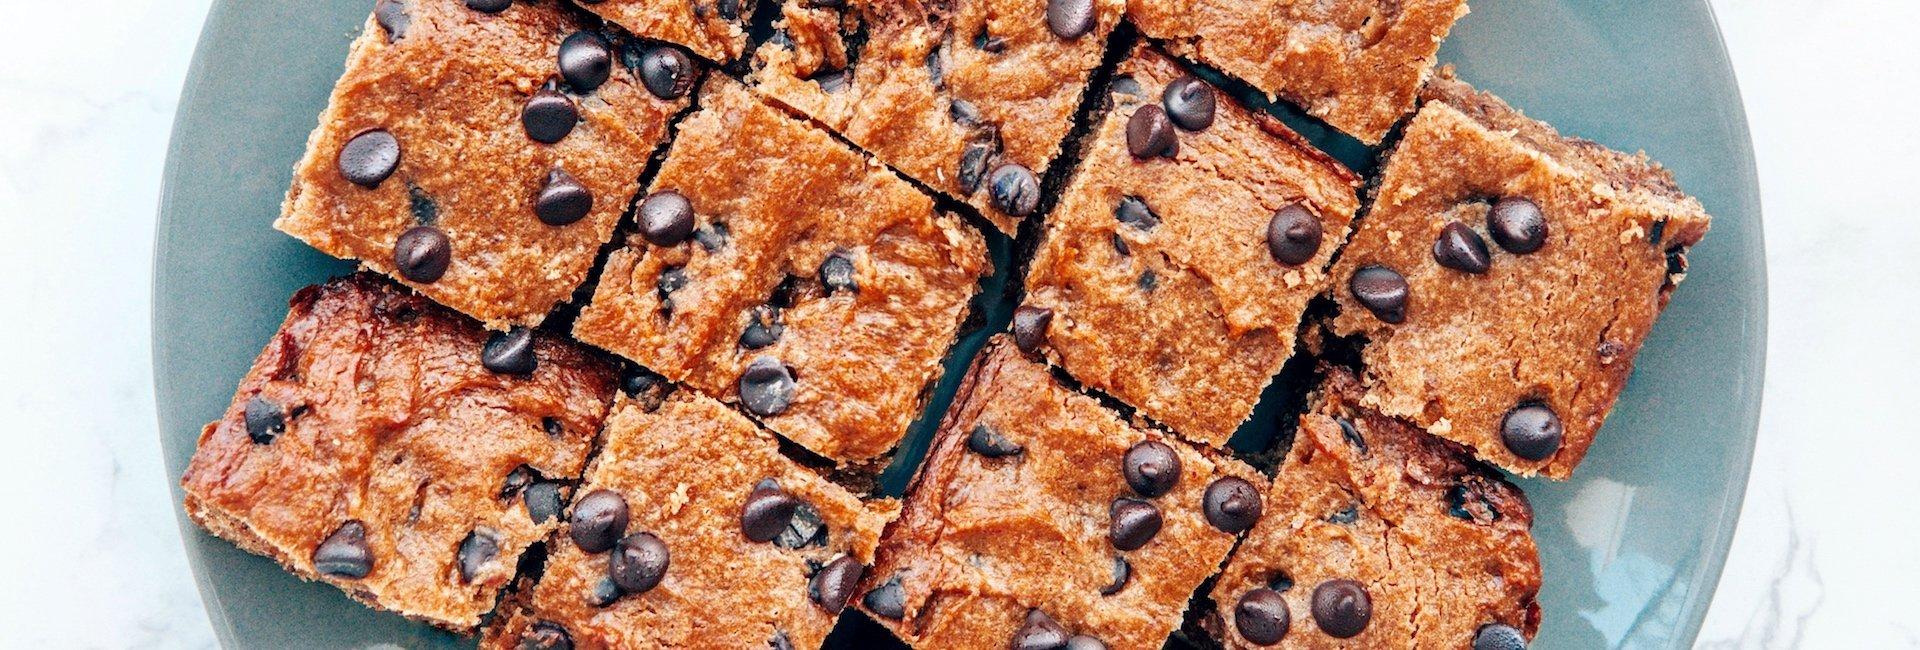 Lily's Sweets Sugar Free Peanut Butter Blondies